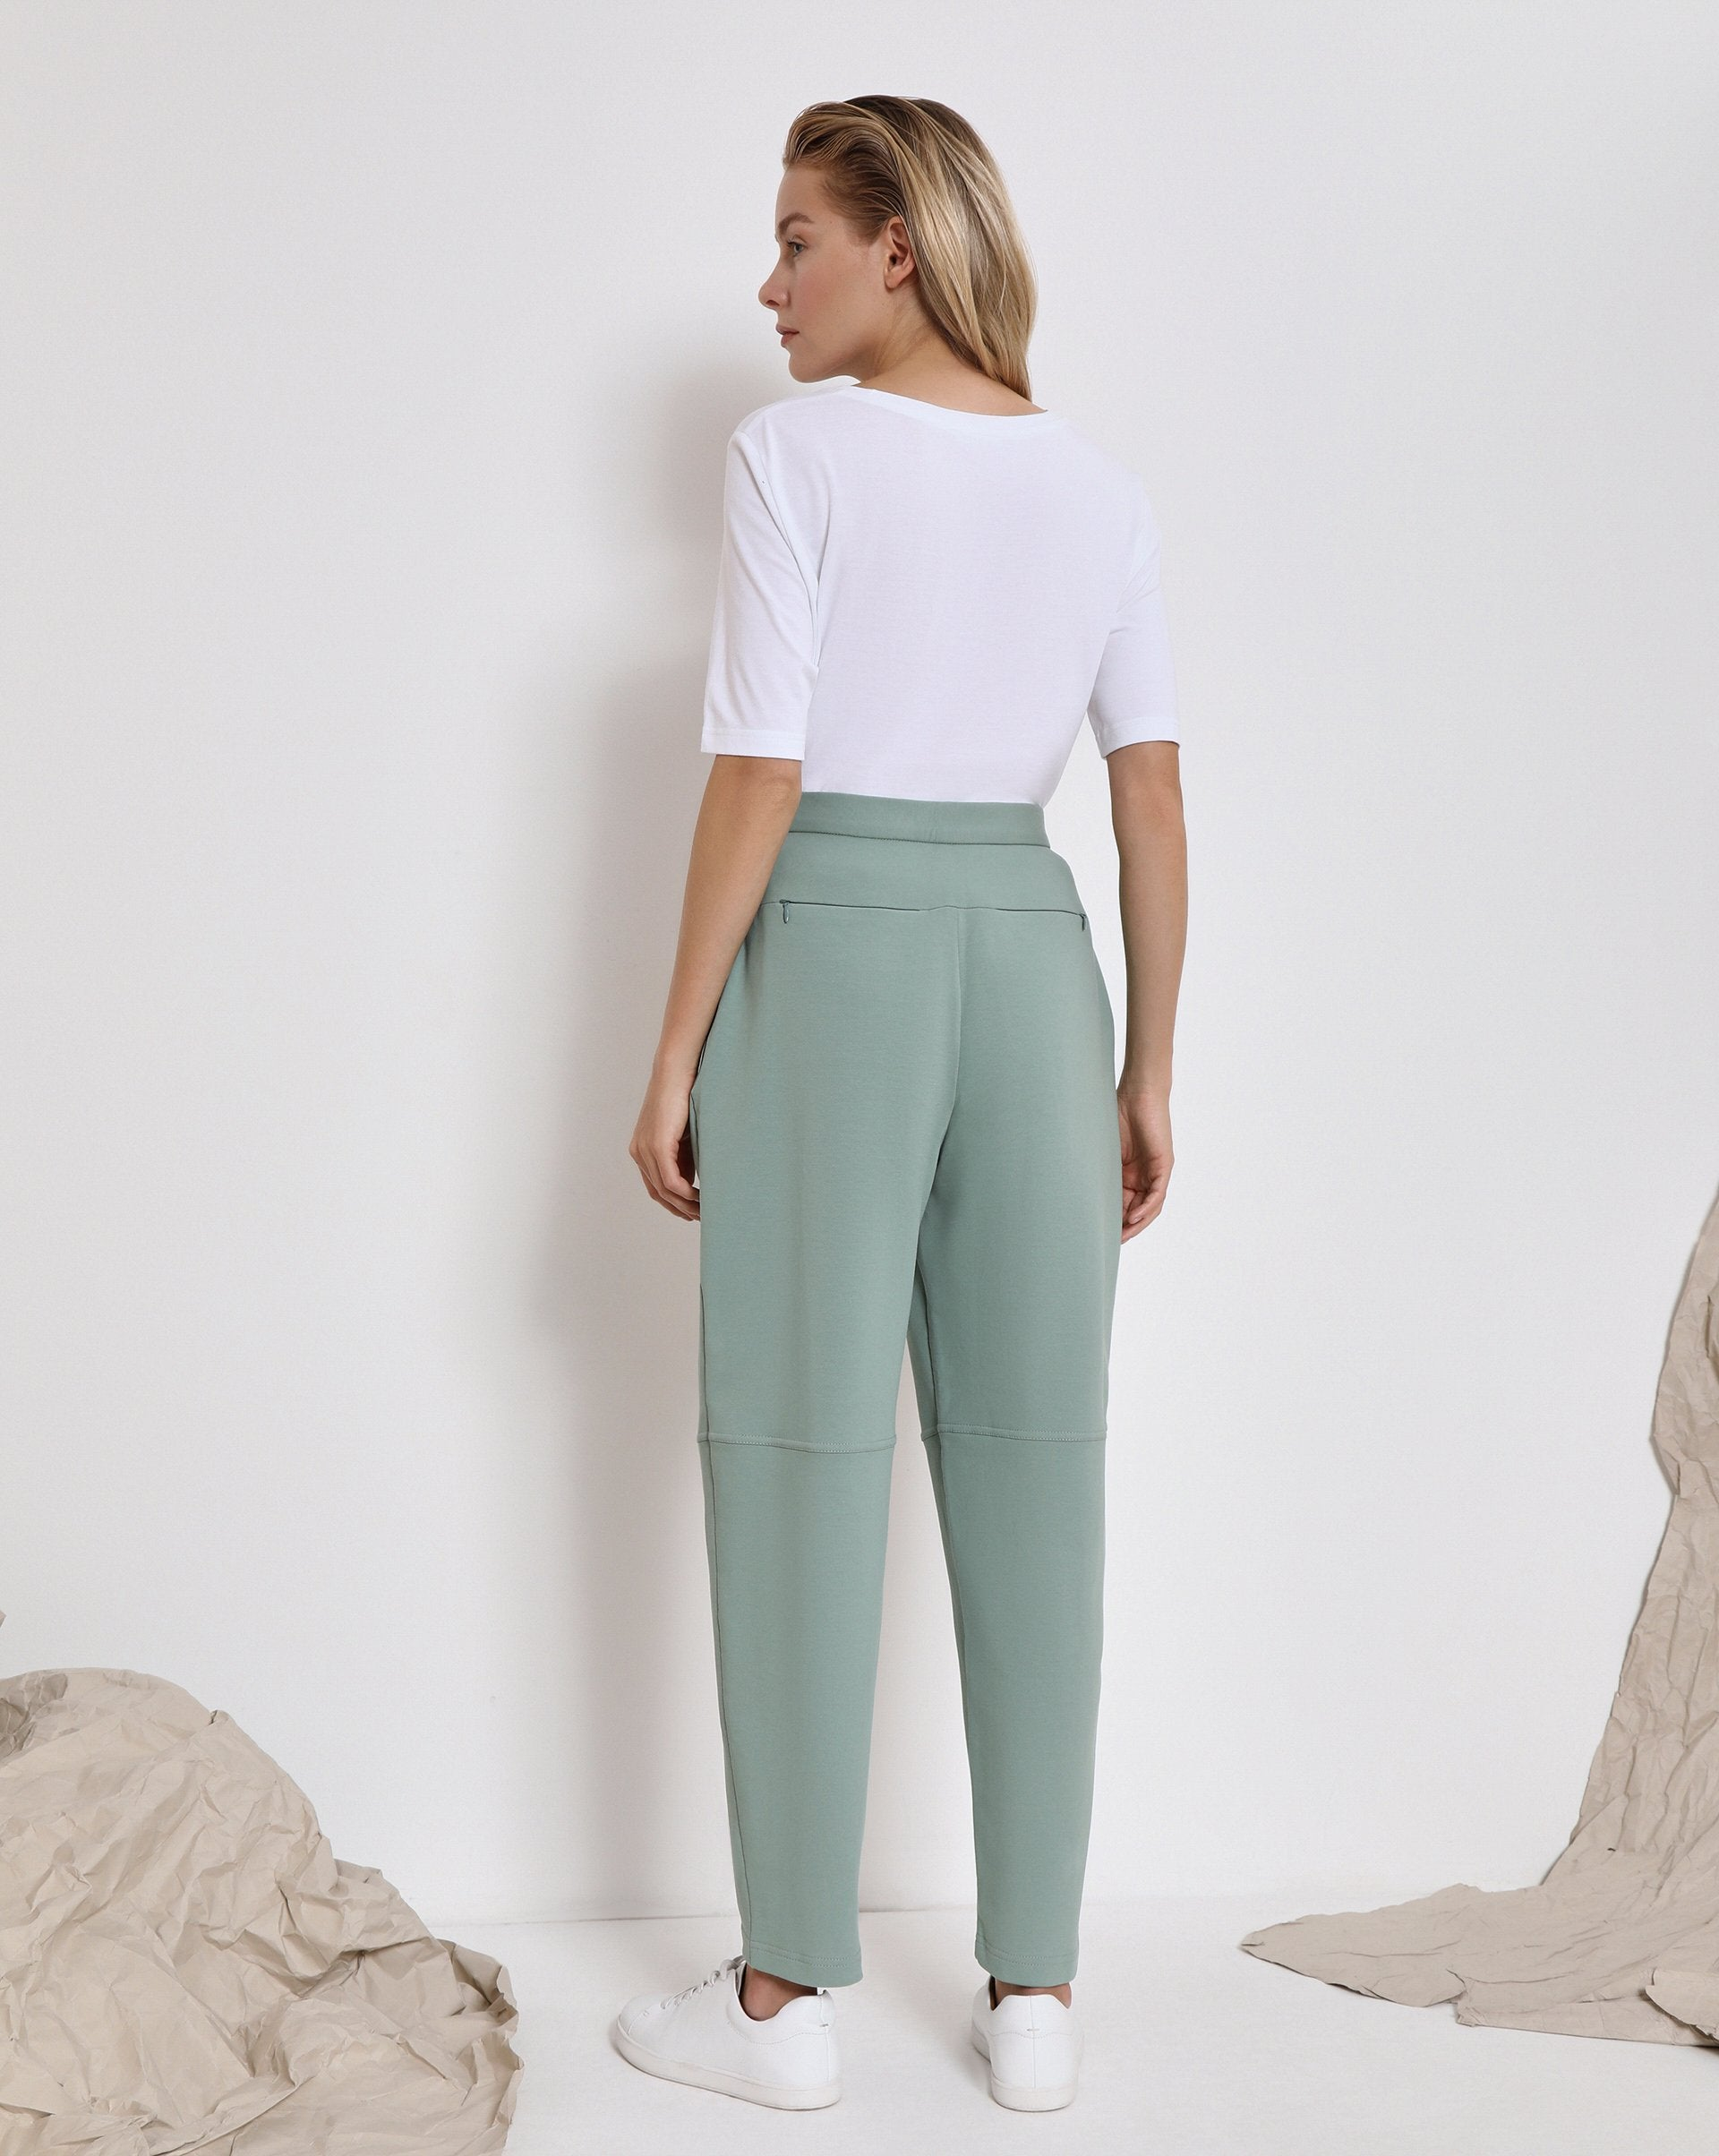 Sports trousers with pockets